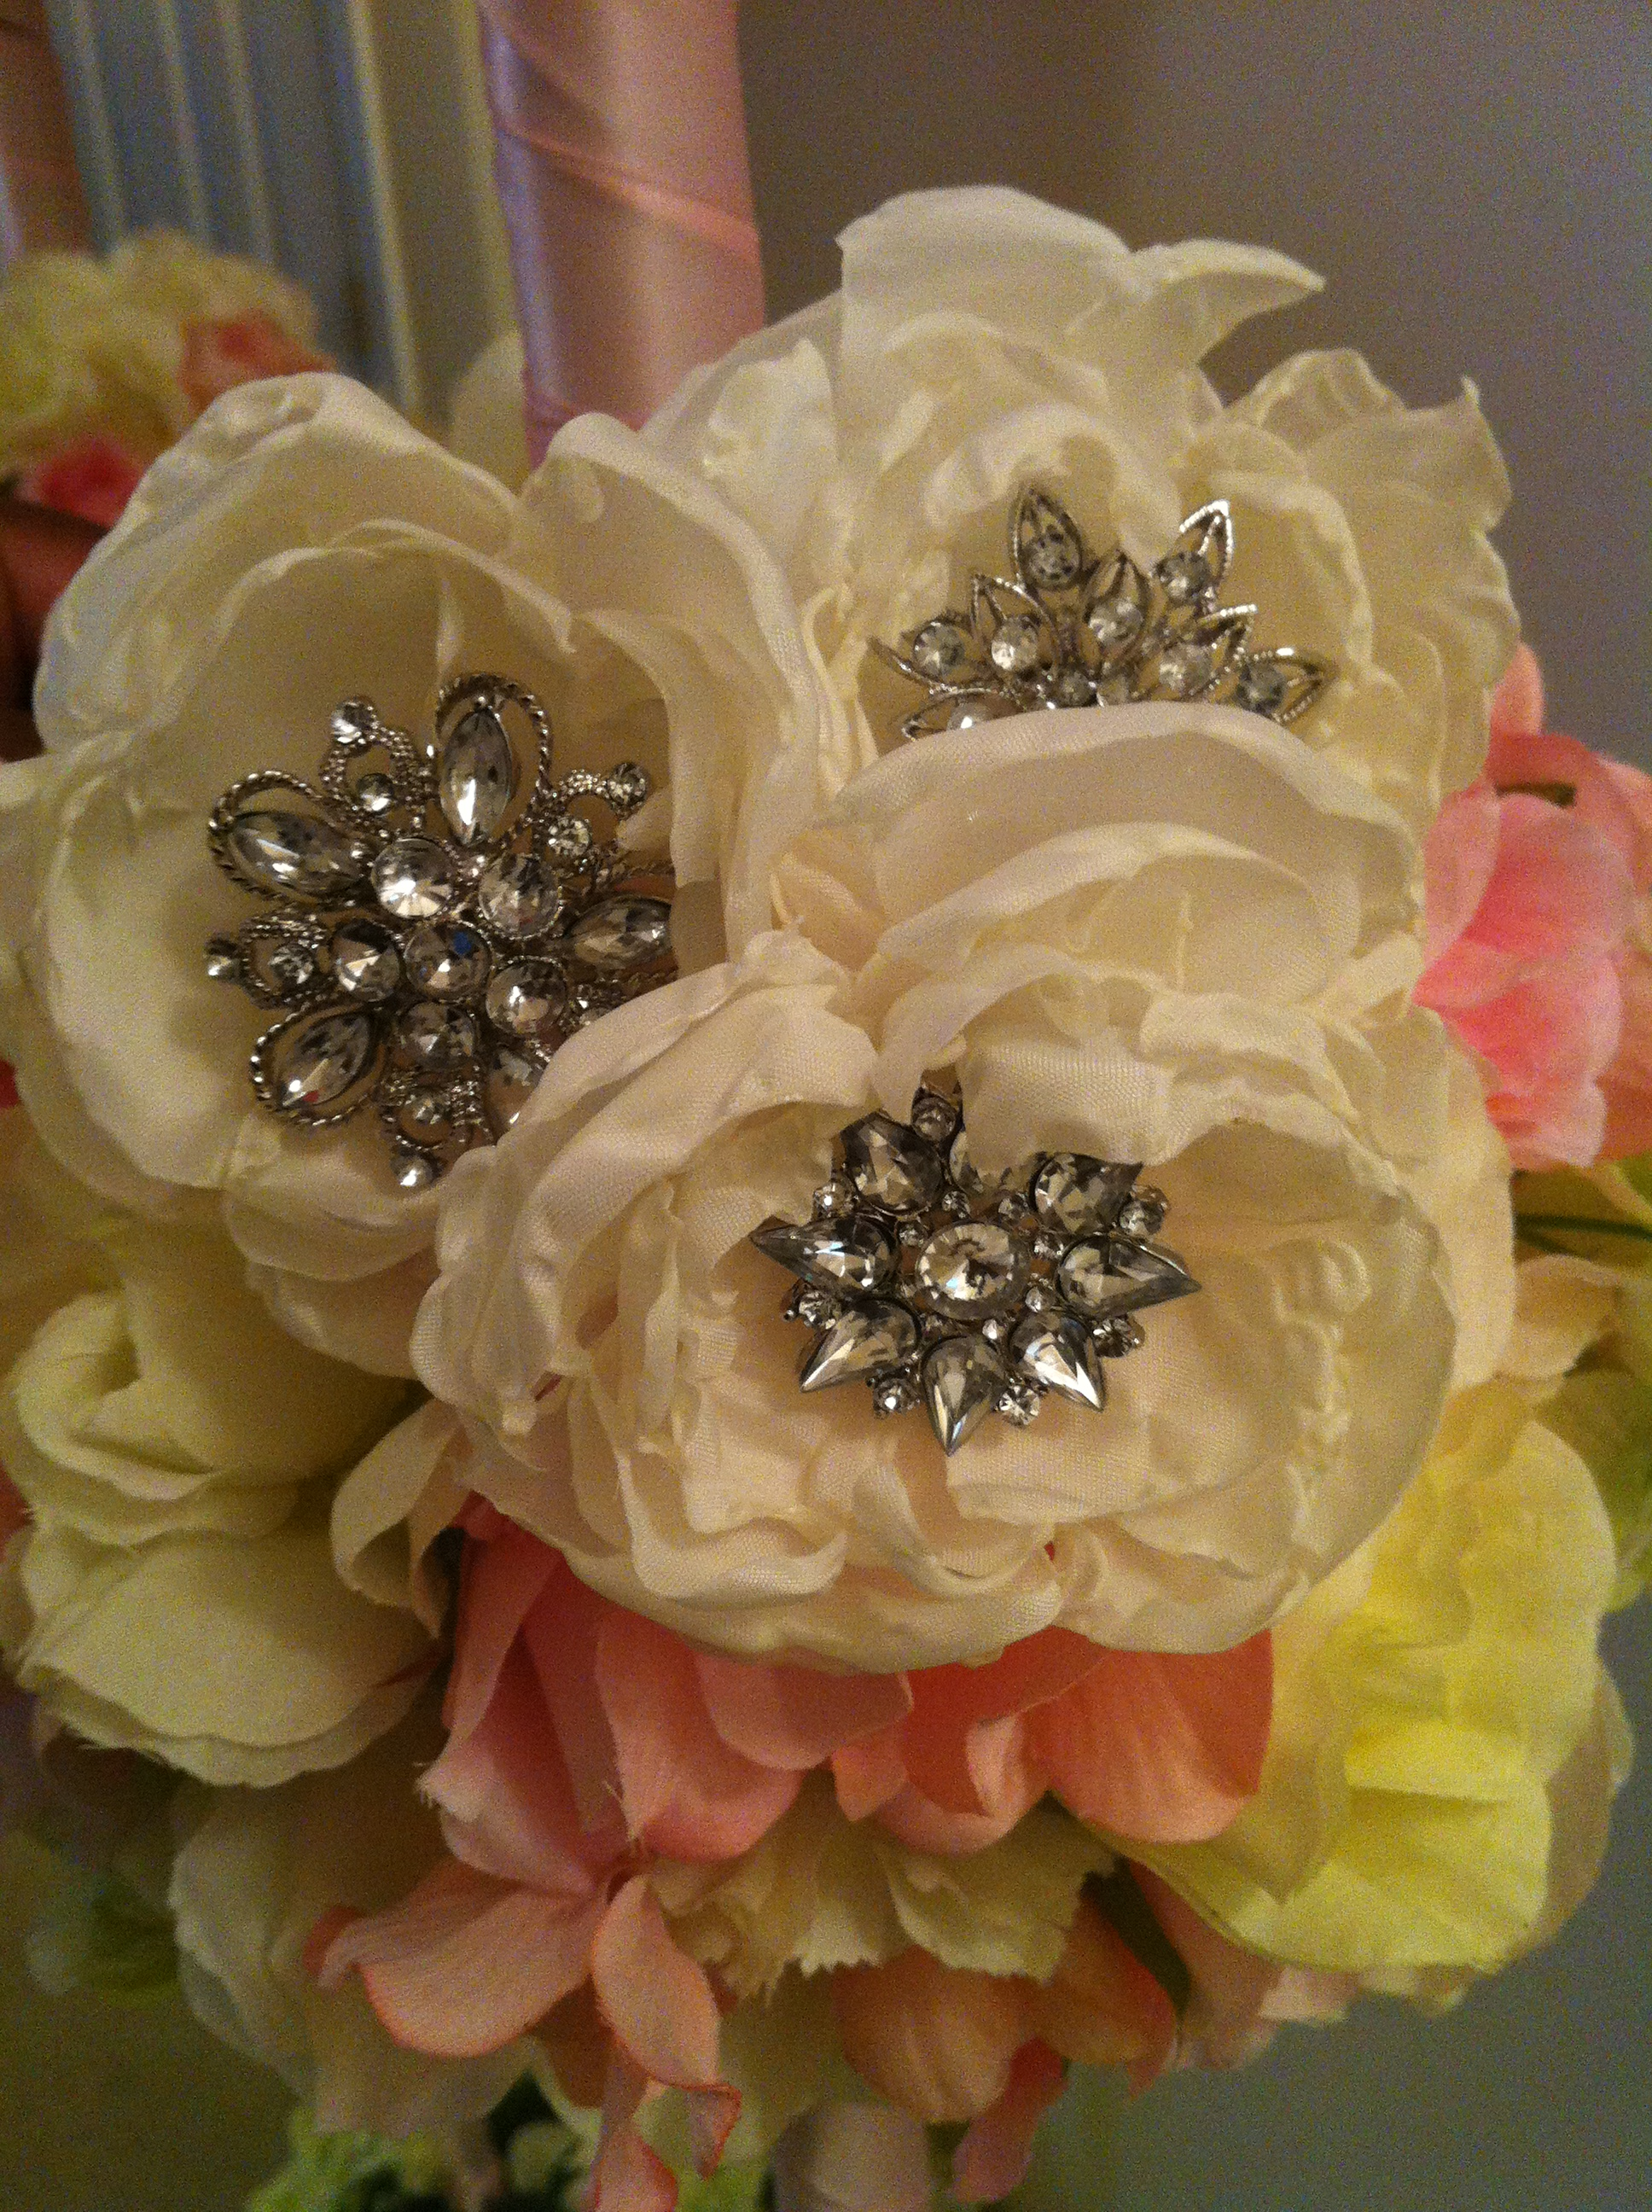 My DIY Fabric Flowers for Use in My Brooch Bouquets | Weddingbee Photo ...